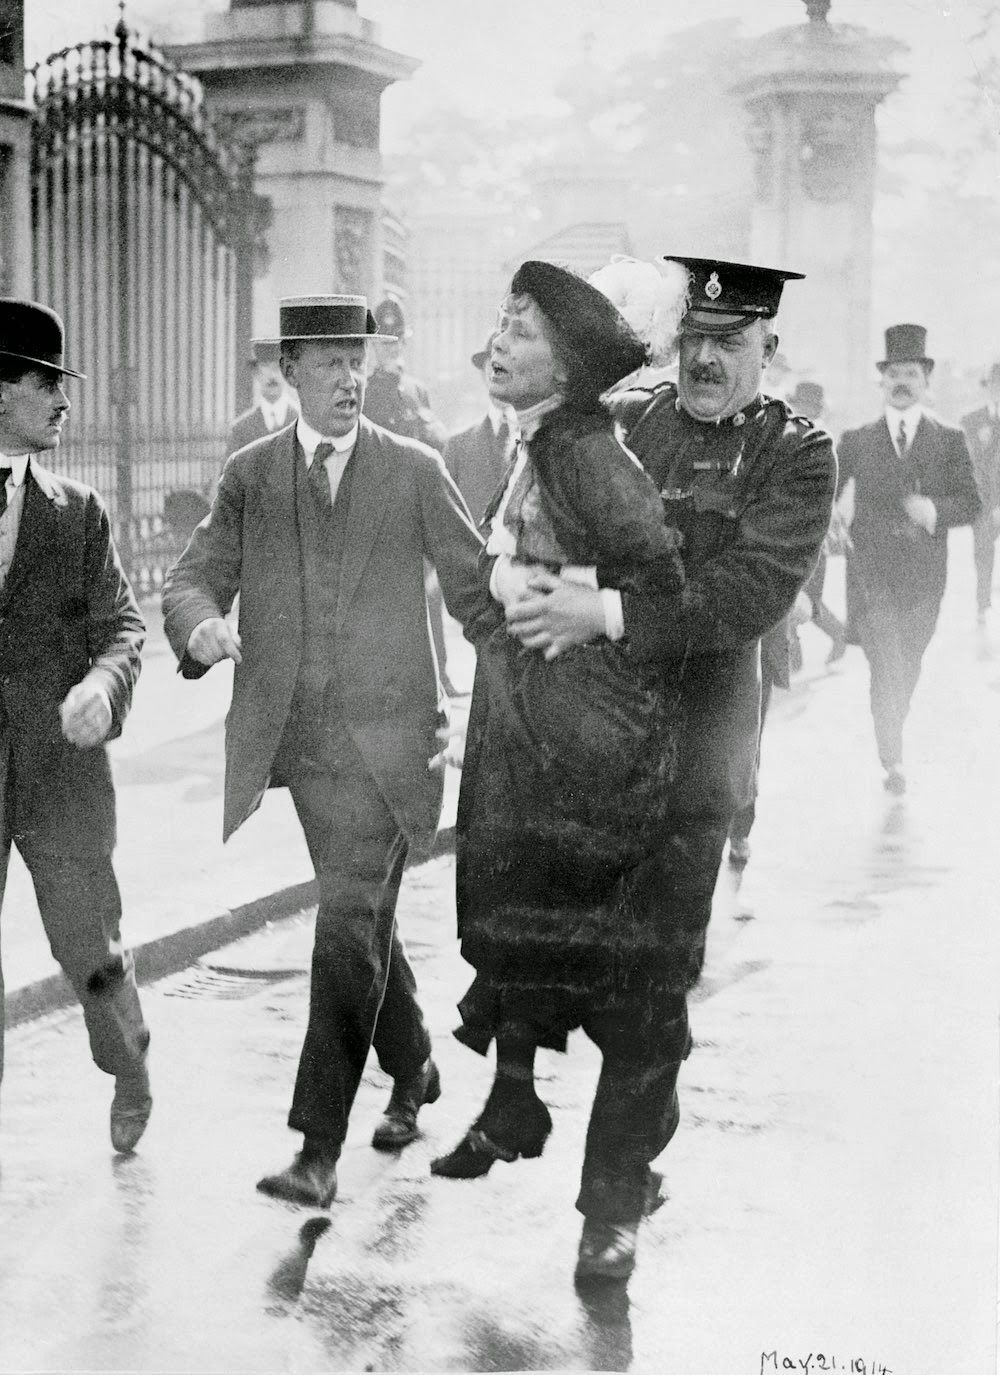 Suffragettes Vs Police Vintage Photos Of Women S Suffrage Movements Ca 1910s Historical Photos Suffragette Women In History [ 1375 x 1000 Pixel ]